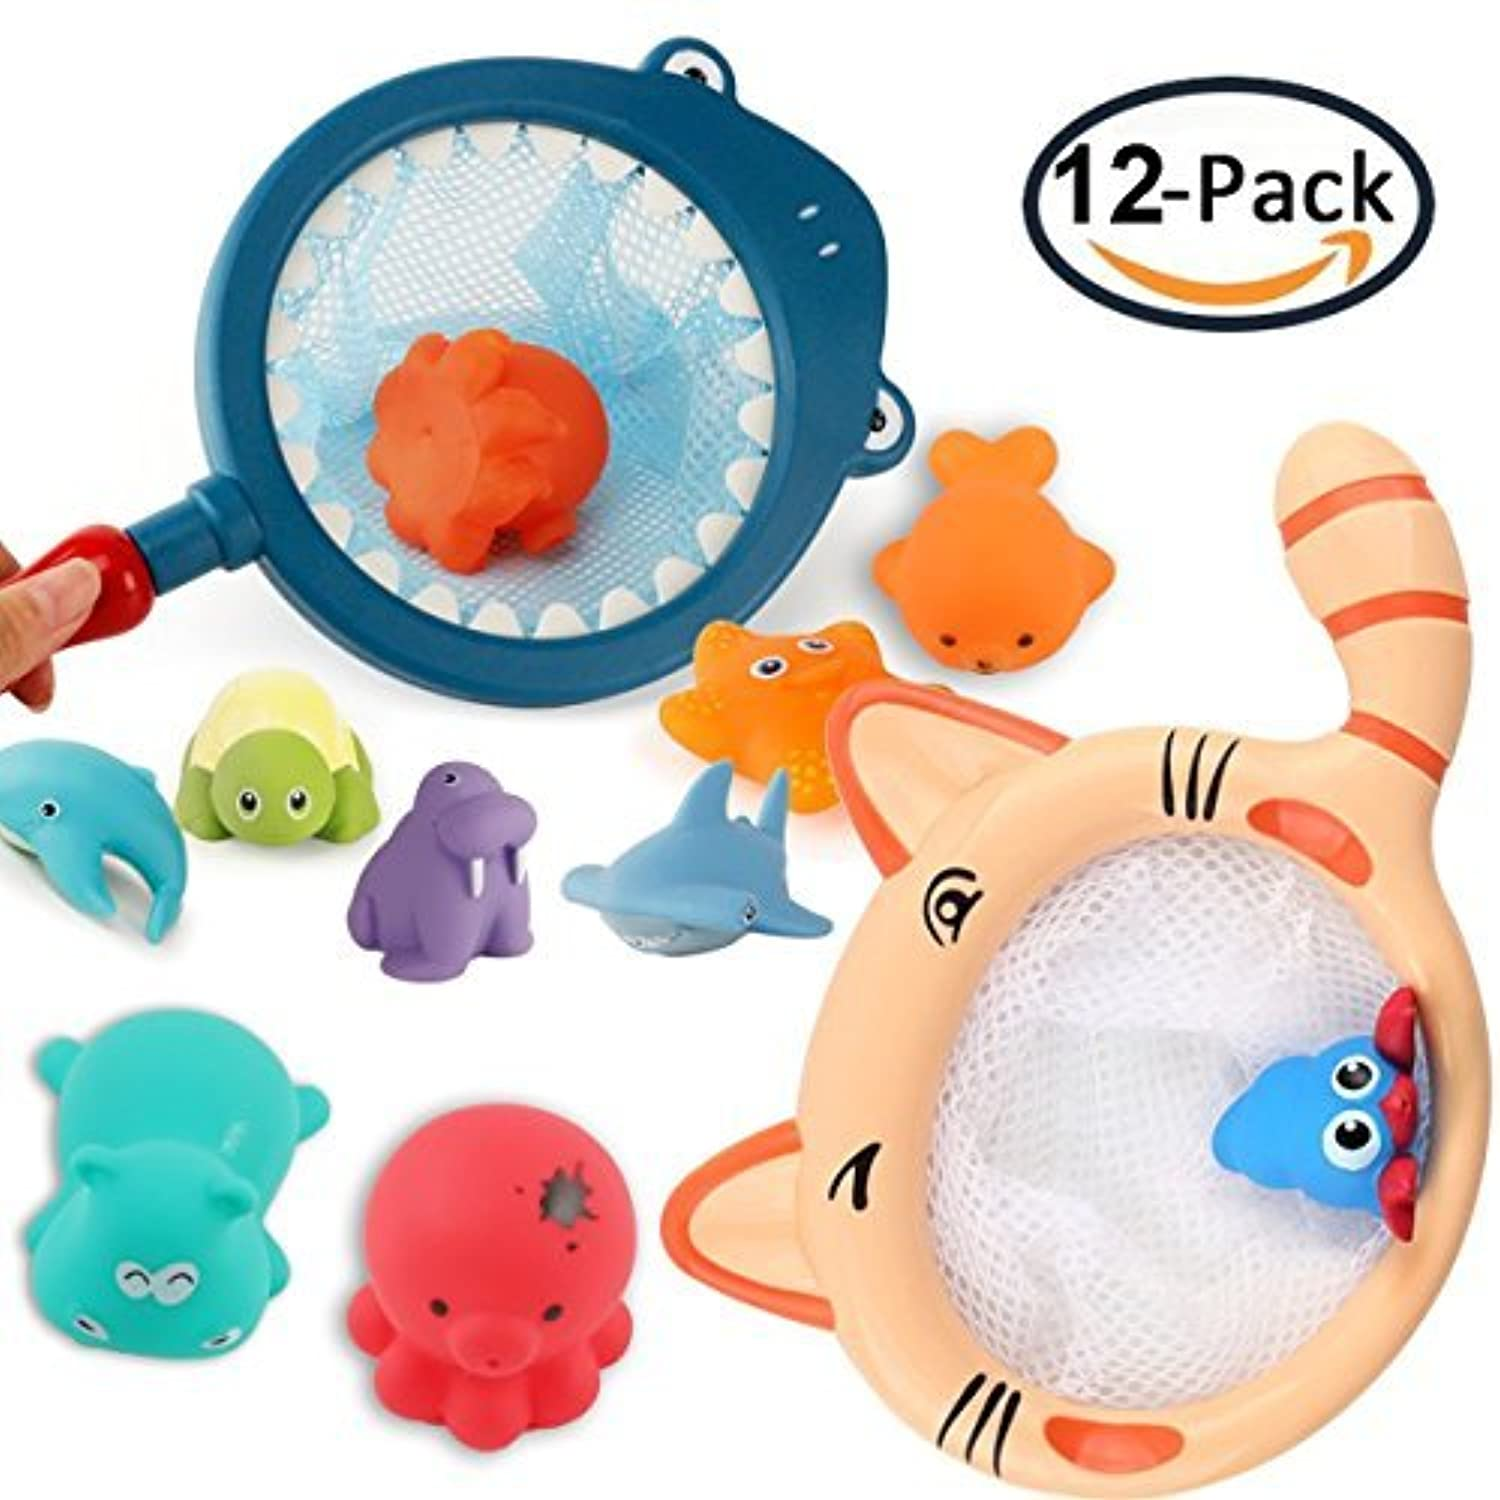 EXSPORT Animal Bath Toys for Kids Babies and Toddlers Ocean Animals Bath Toys Fishing Net Floating Animals Water Toy Kids Bath Time Play Set Shark Dolphin [並行輸入品]